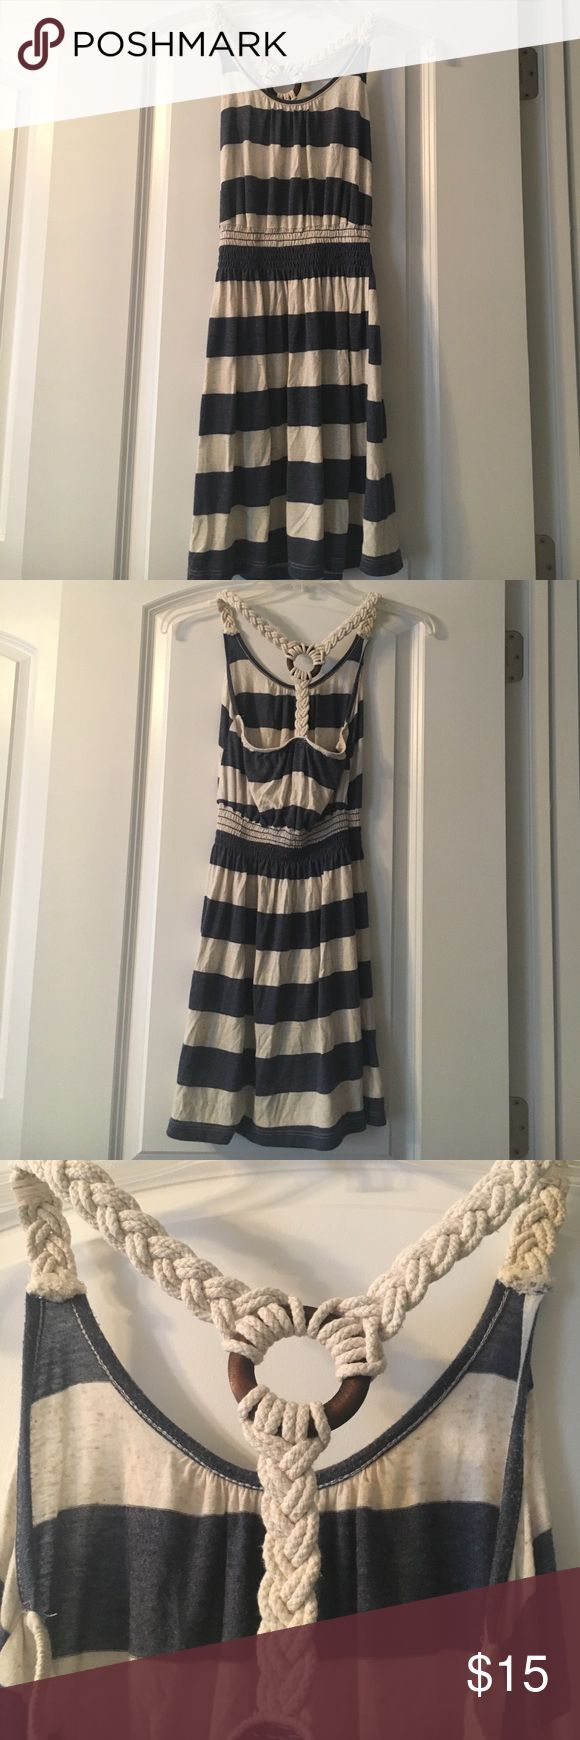 Ocean Drive Nautical Top Ocean Drive top is long or can be styled as a short dress. Nautical racerback. Stripe colors are denim blue and oatmeal. Hand wash in cold water. In excellent condition! Ocean Drive Tops